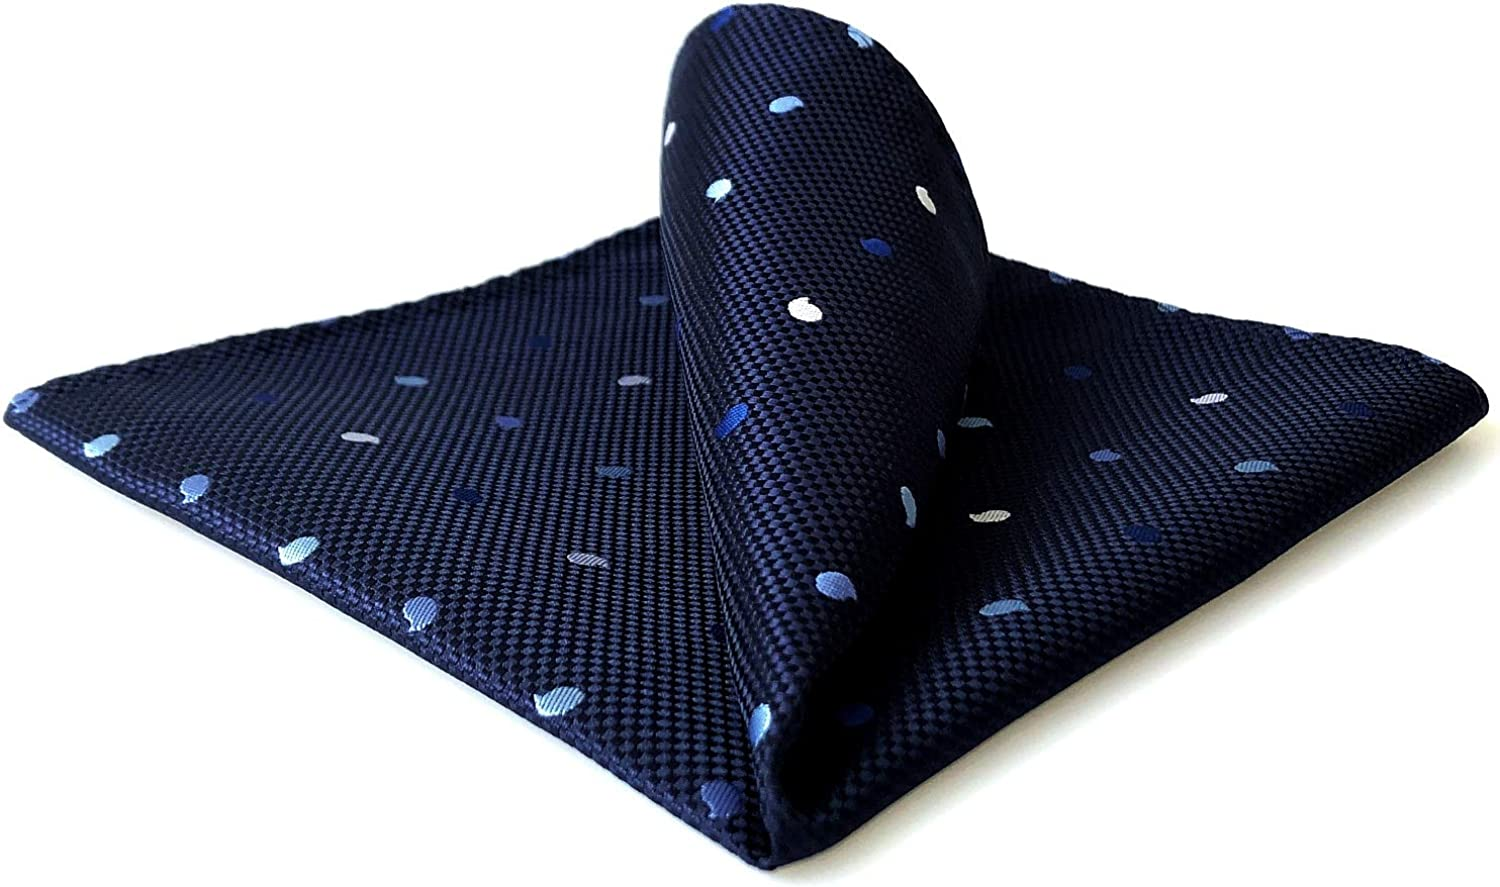 S&W SHLAX&WING Pocket Squares for Men Blue Navy Paisley